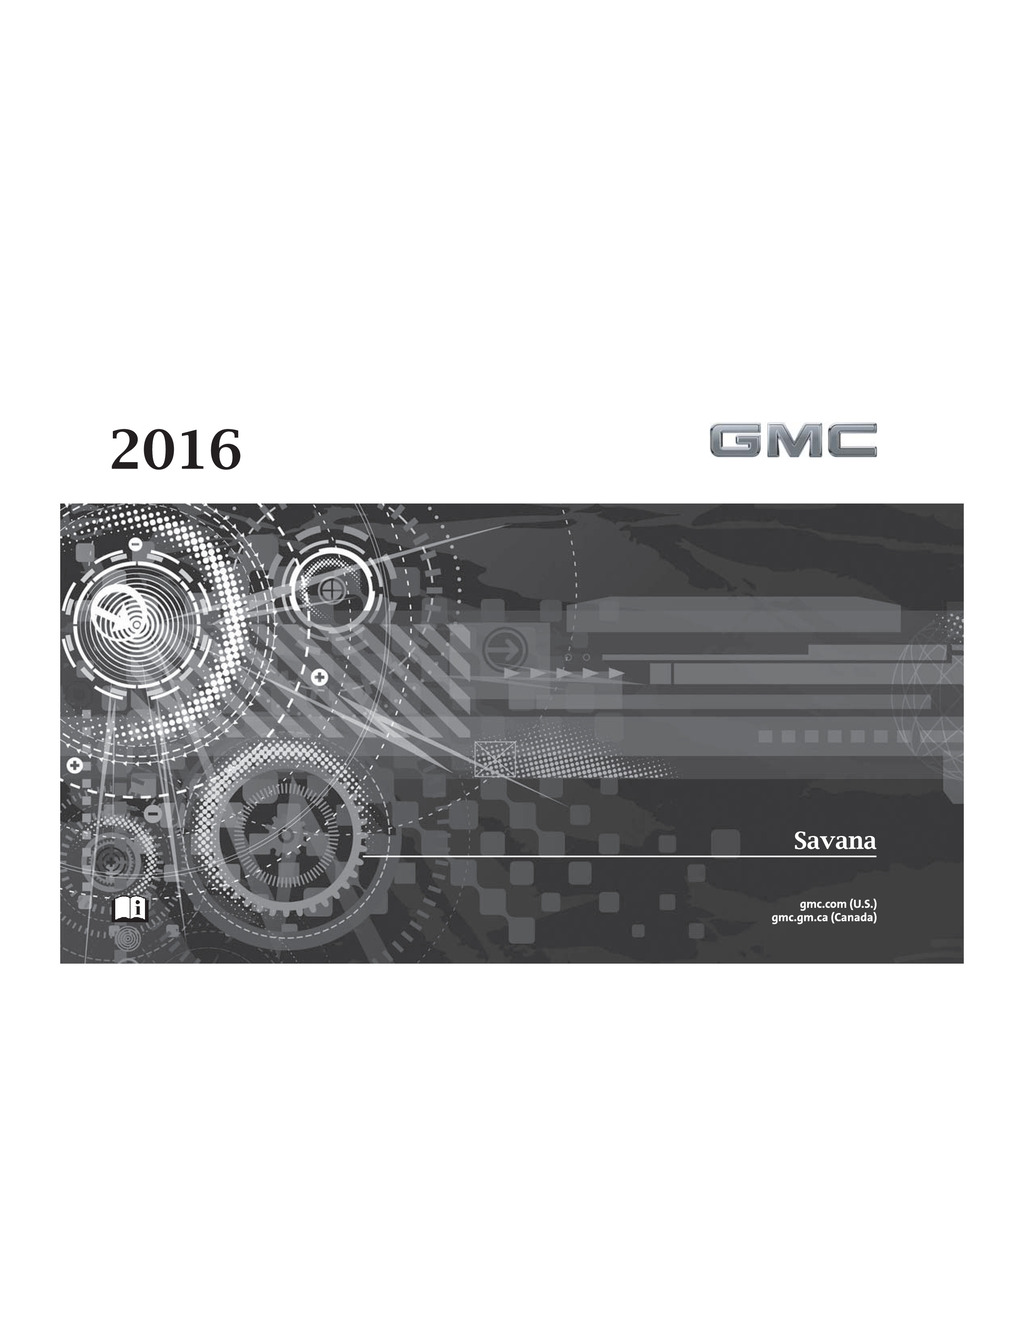 2016 GMC Savana owners manual